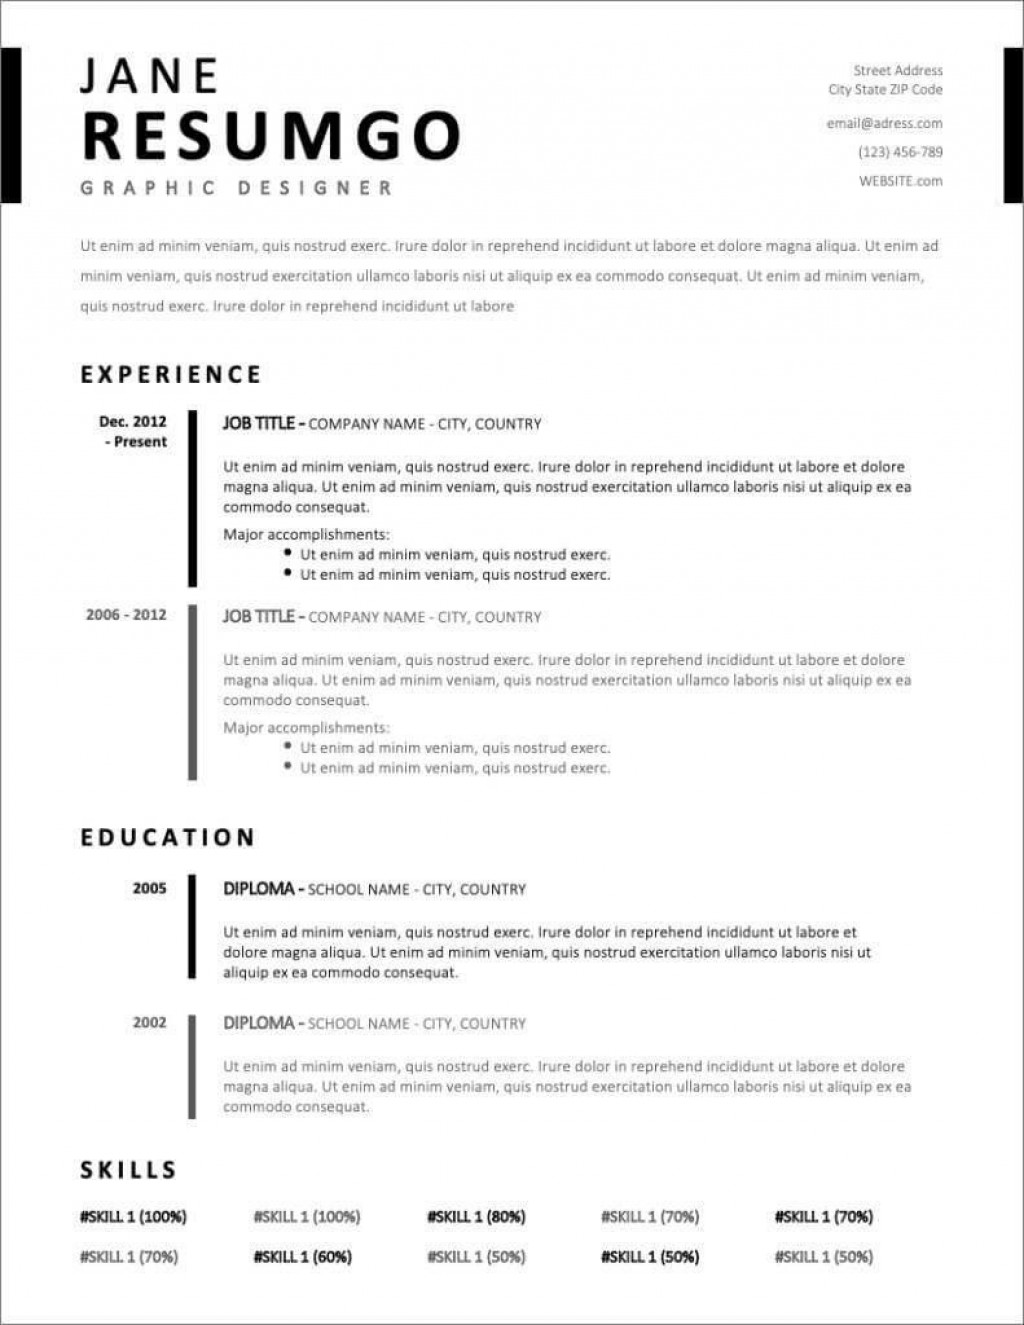 006 Best Basic Resume Template Free Idea  Easy Download Word Australia DocLarge